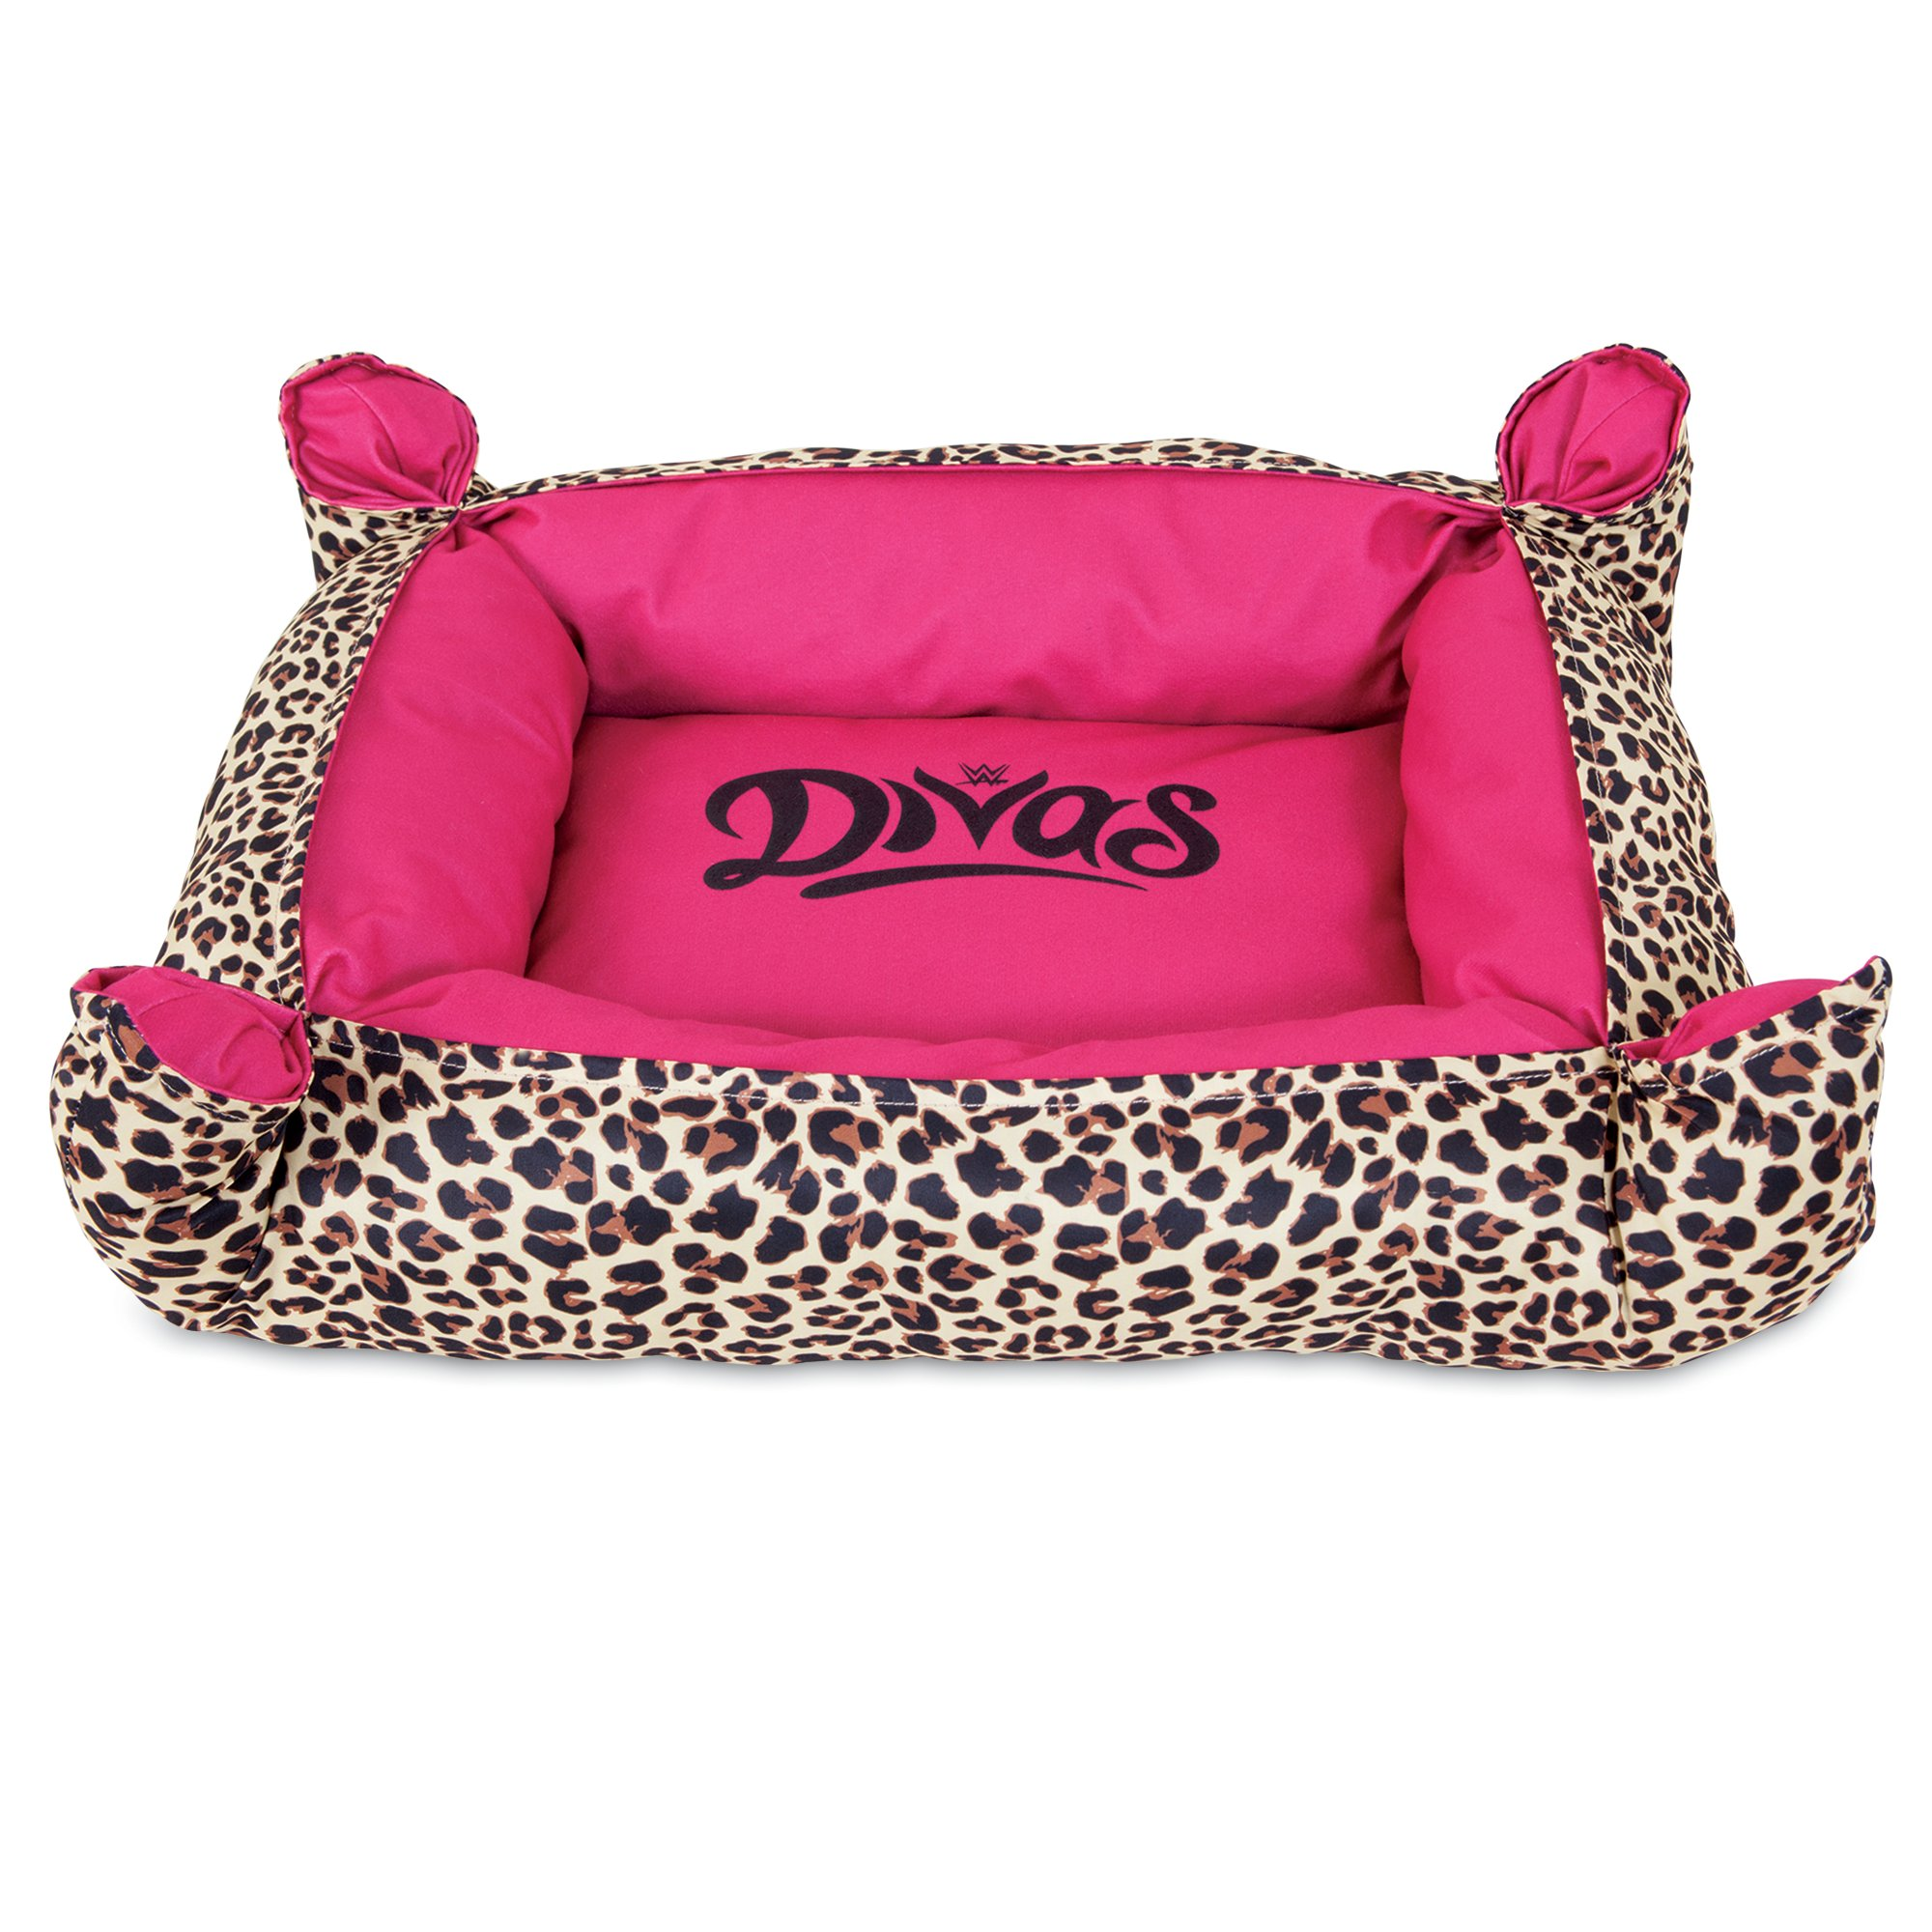 """Image of """"WWE Divas Pinched Cuddler Dog Bed in Pink, 19"""""""" L x 16"""""""" W, X-Small"""""""